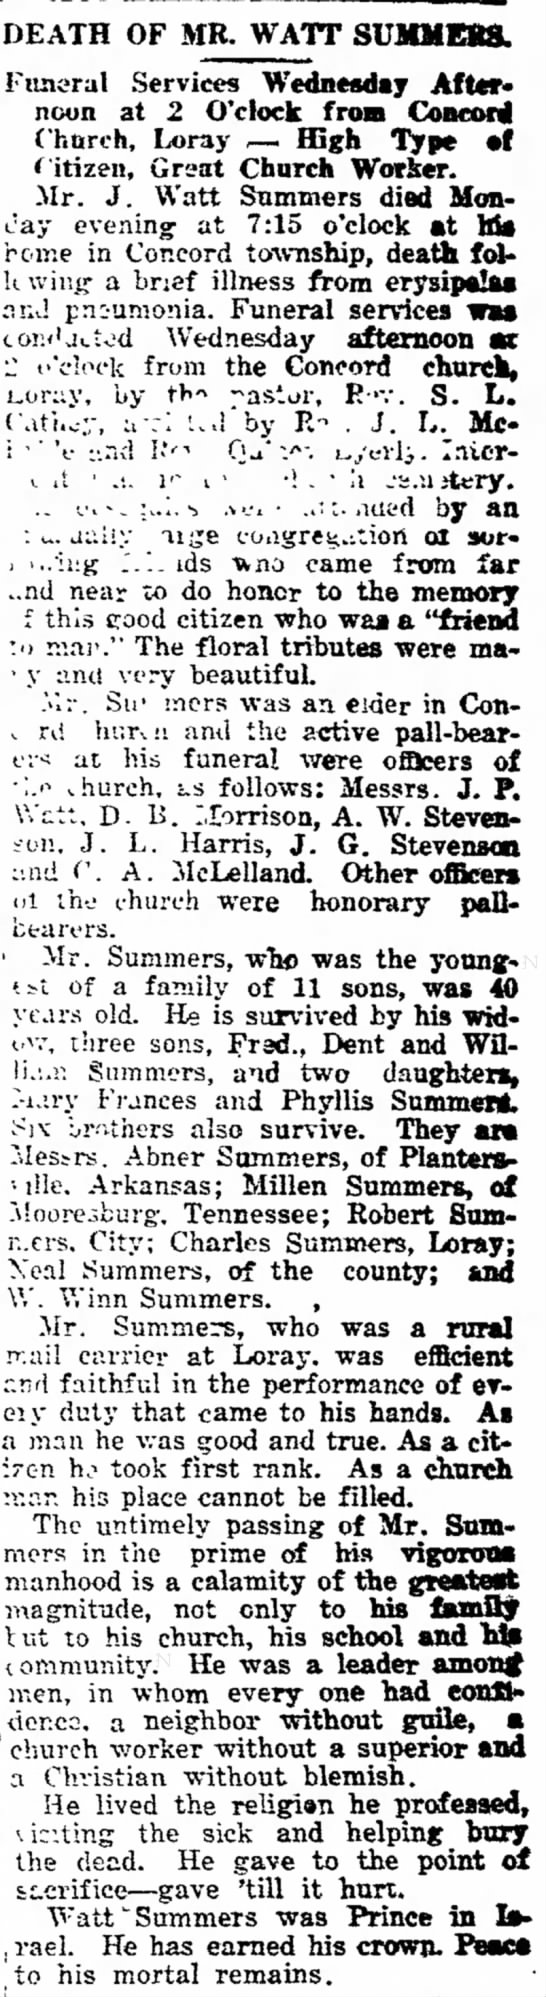 Obit Watt SUMMERS - AWA\ .DEATH OF MR. WATT Funeral Services...